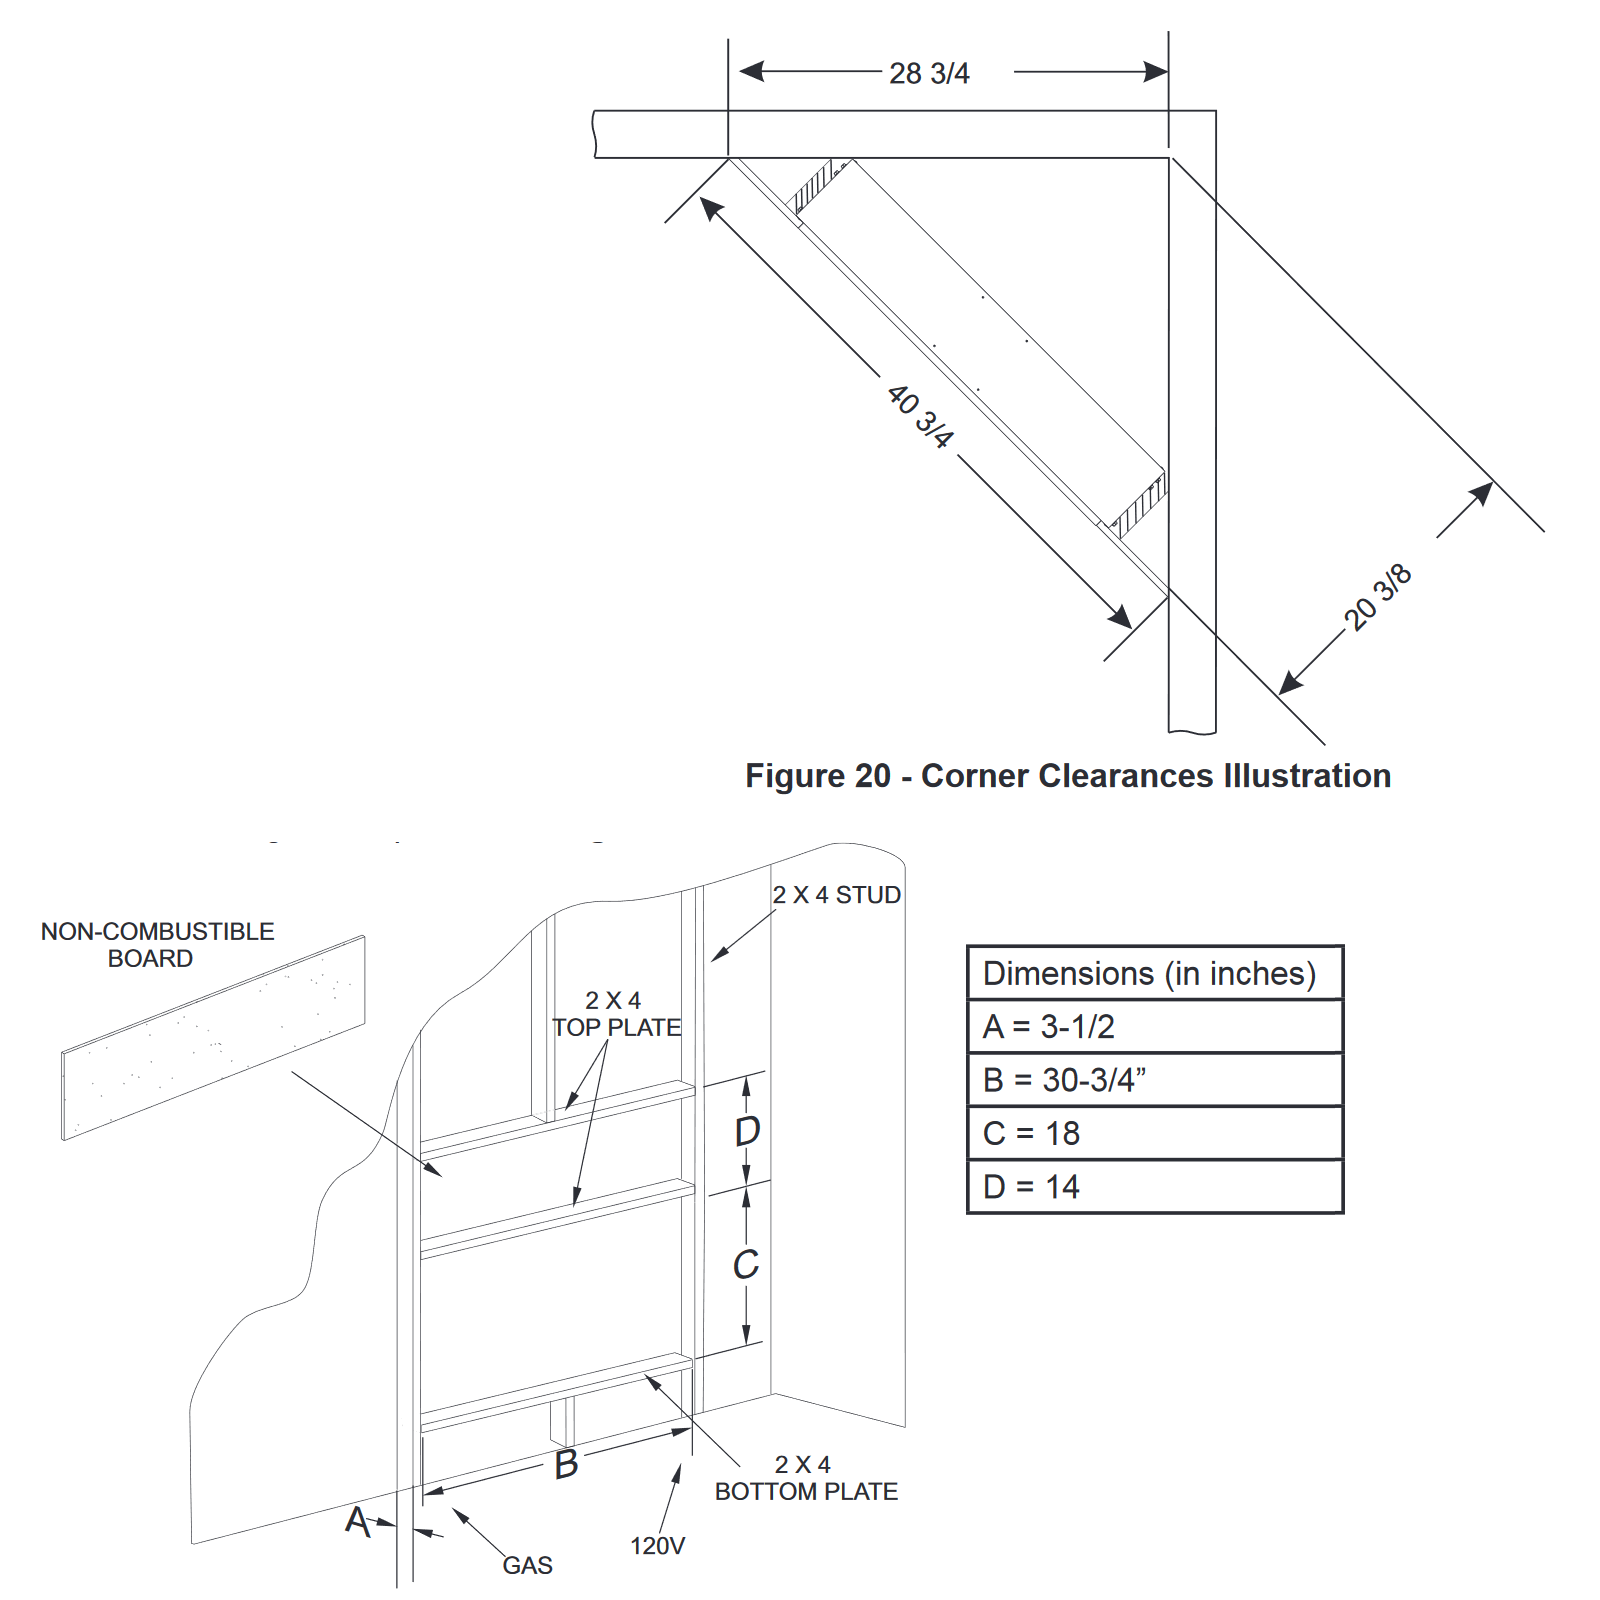 VFSL30 Technical Drawing 2